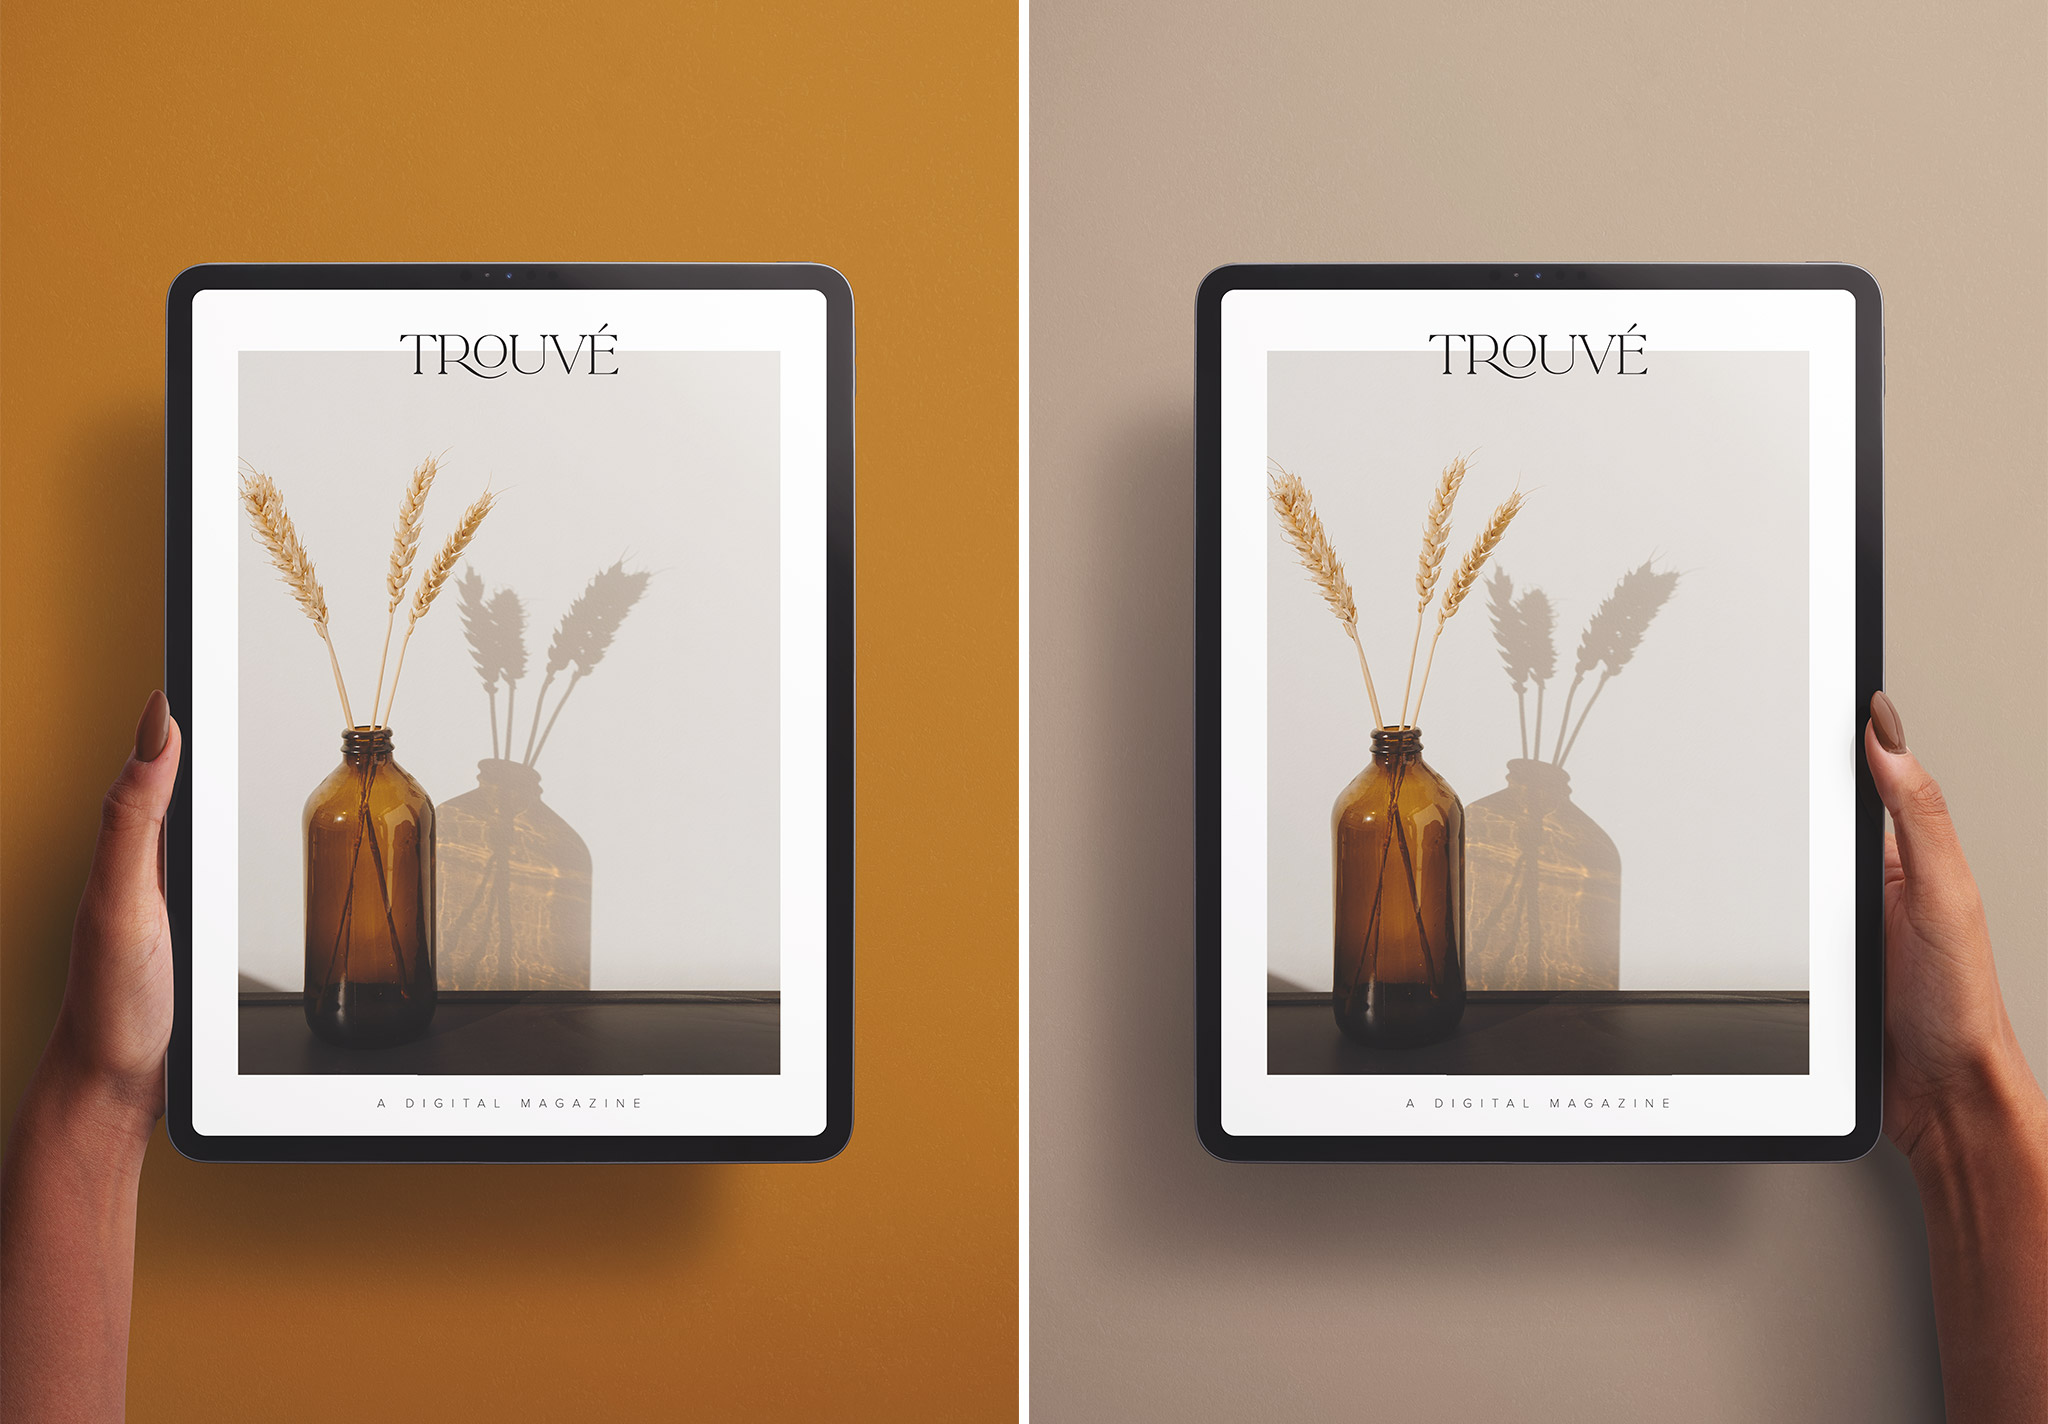 Hands Holding Tablet Pro Vertical Mockup Image03